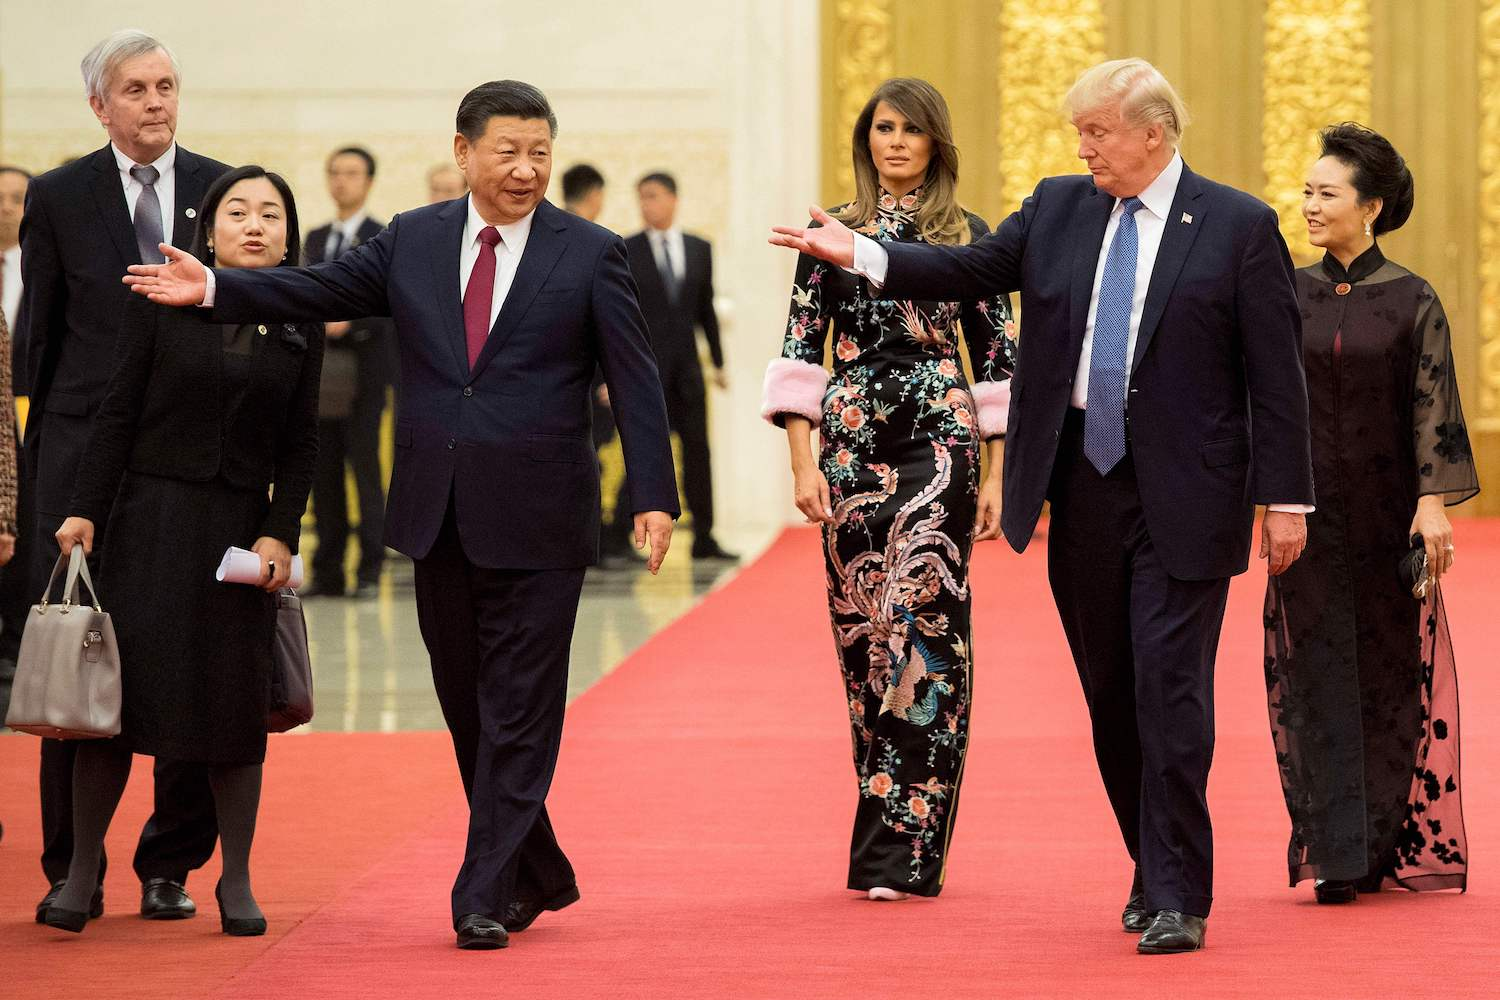 U.S. President Donald Trump (second right) gestures toward China's President Xi Jinping (third left), as U.S. First Lady Melania Trump (center) and Xi's wife Peng Liyuan (right) look on, the Great Hall of the People in Beijing on Nov. 9. Jim Watson/AFP/Getty Images